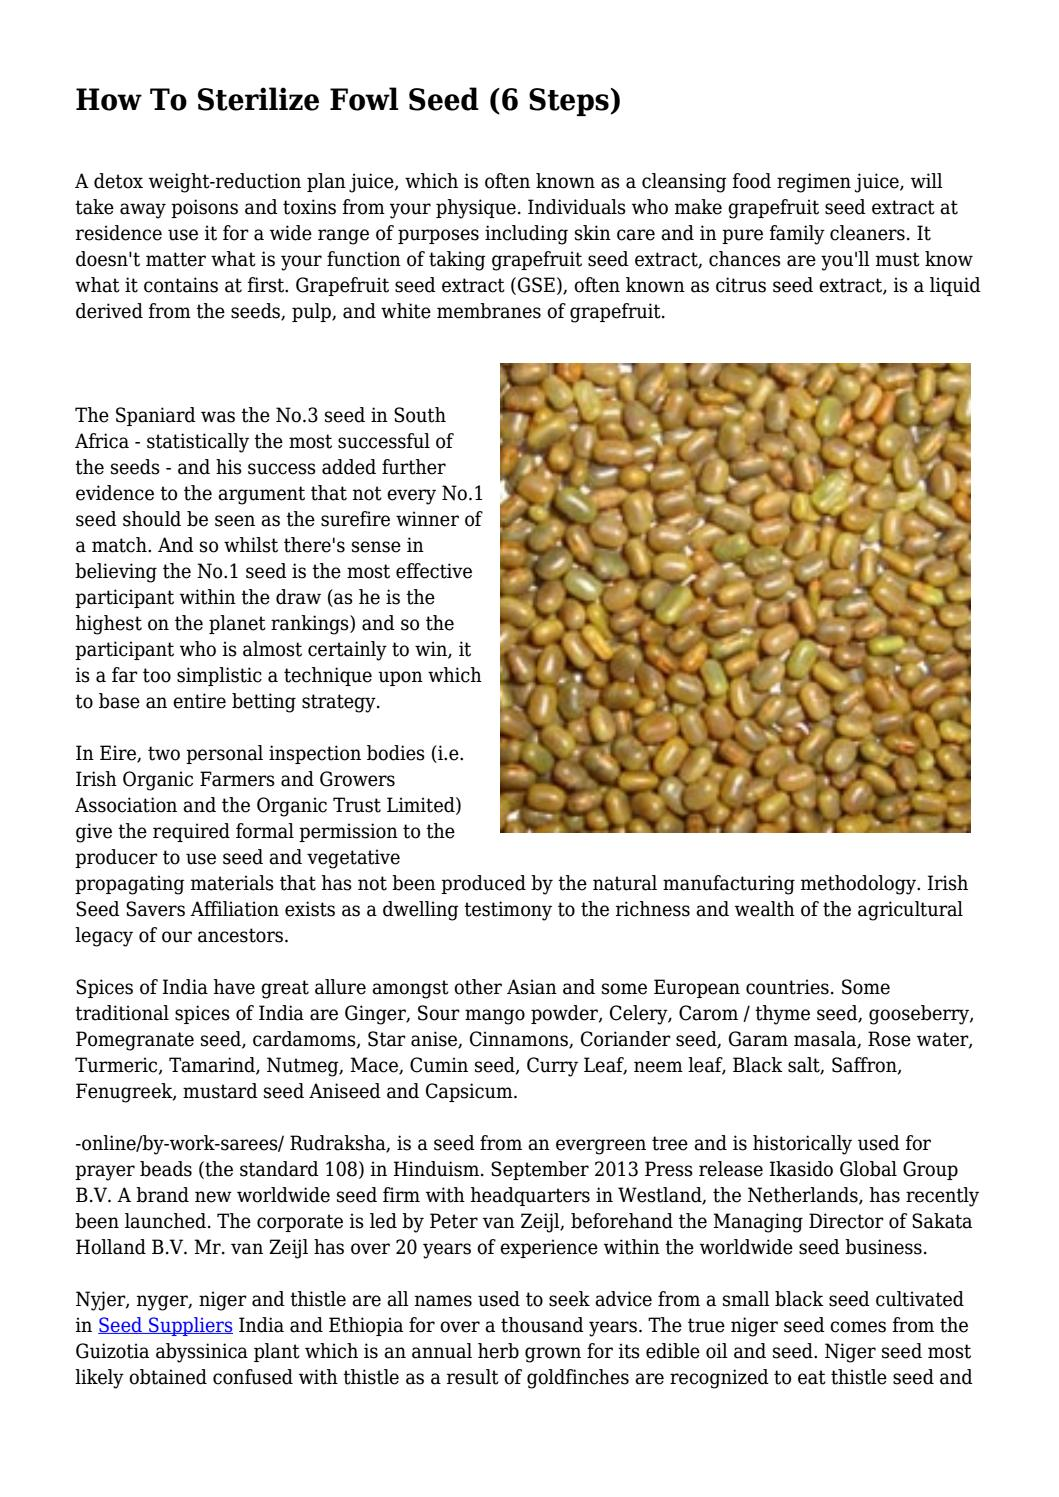 How To Sterilize Fowl Seed (6 Steps) by hinescfqkqcrigp - issuu